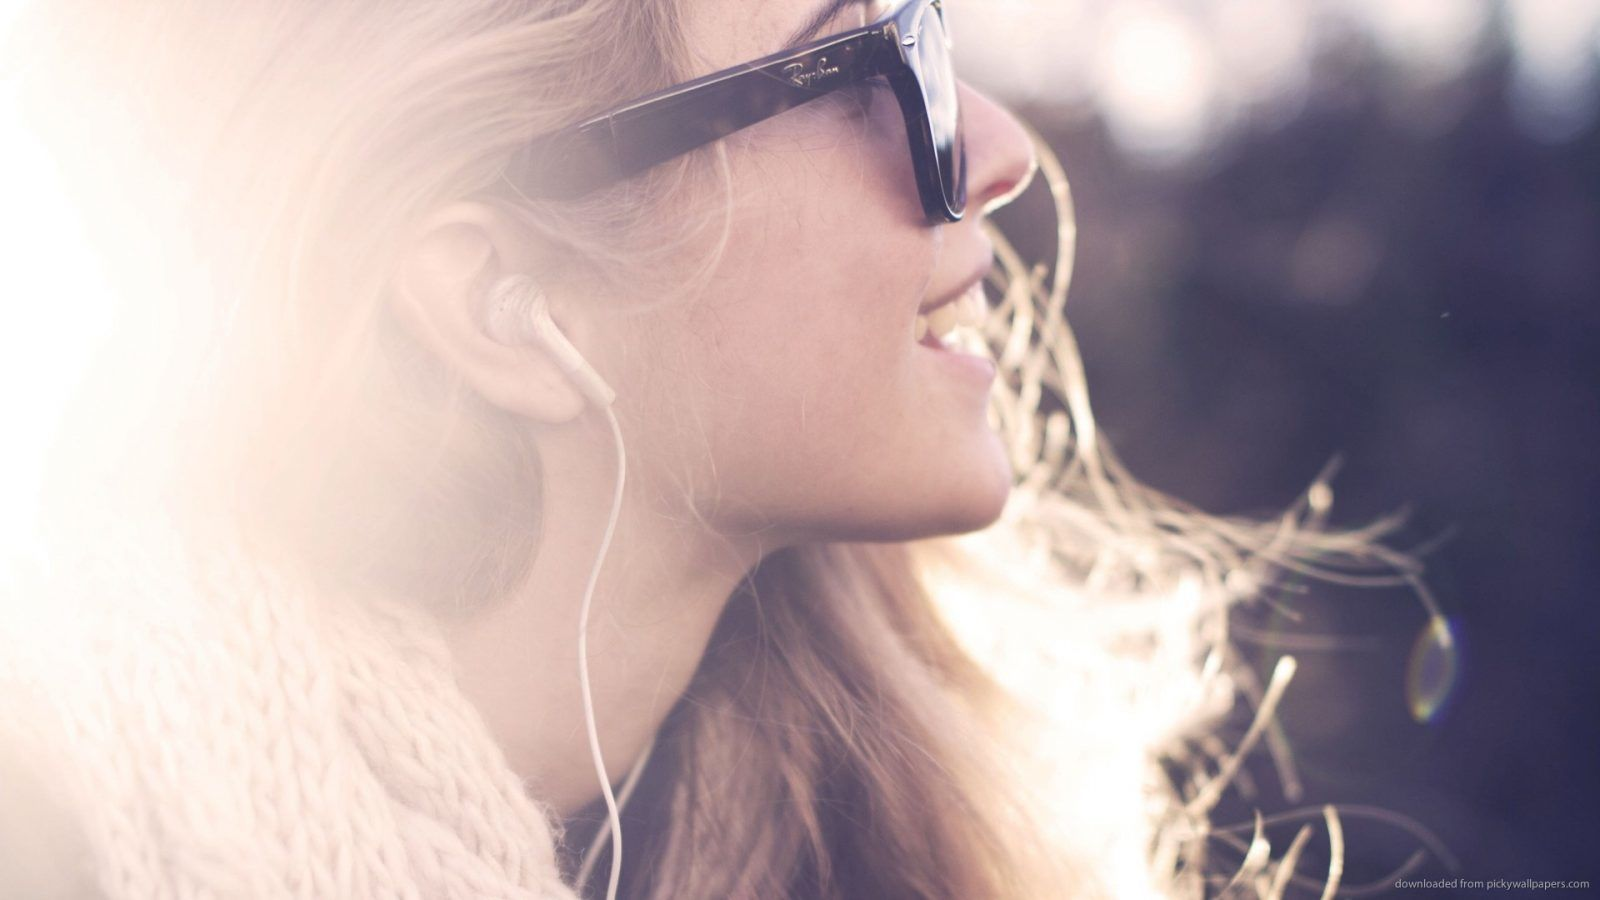 11 Songs Perfect for Carefree Summer Relaxation